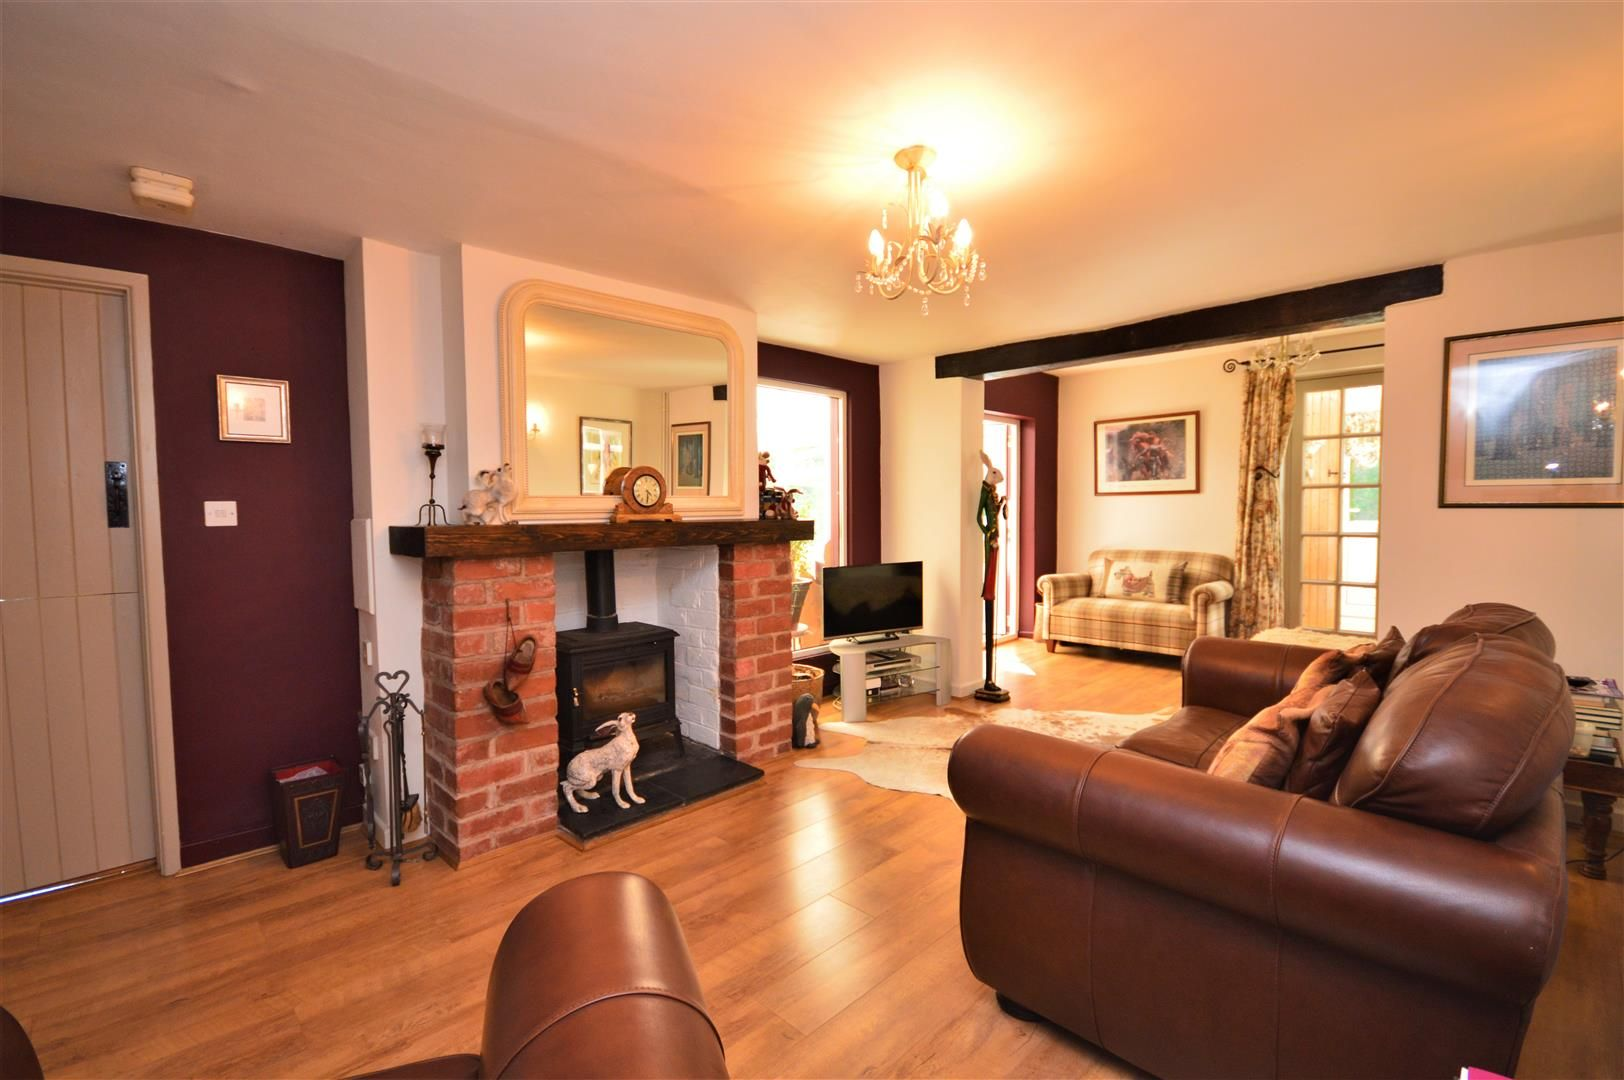 3 bed semi-detached for sale in Stretton Sugwas 5